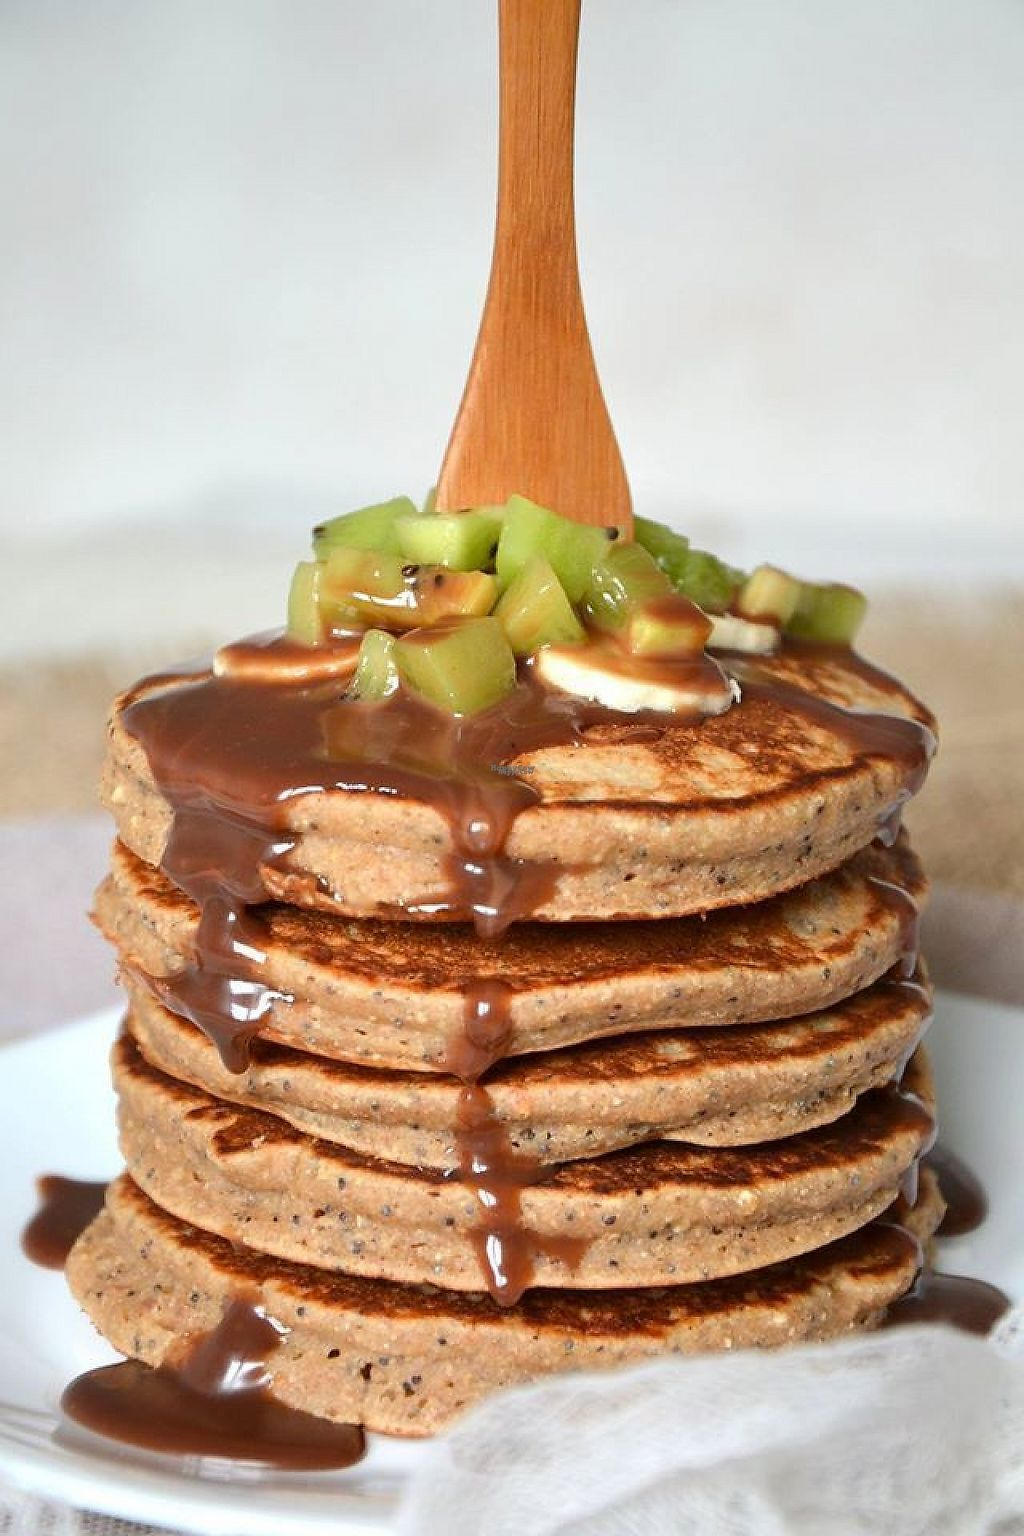 """Photo of La Vie Claire  by <a href=""""/members/profile/community"""">community</a> <br/>vegan hazelnut pancakes  <br/> February 4, 2017  - <a href='/contact/abuse/image/68773/221804'>Report</a>"""